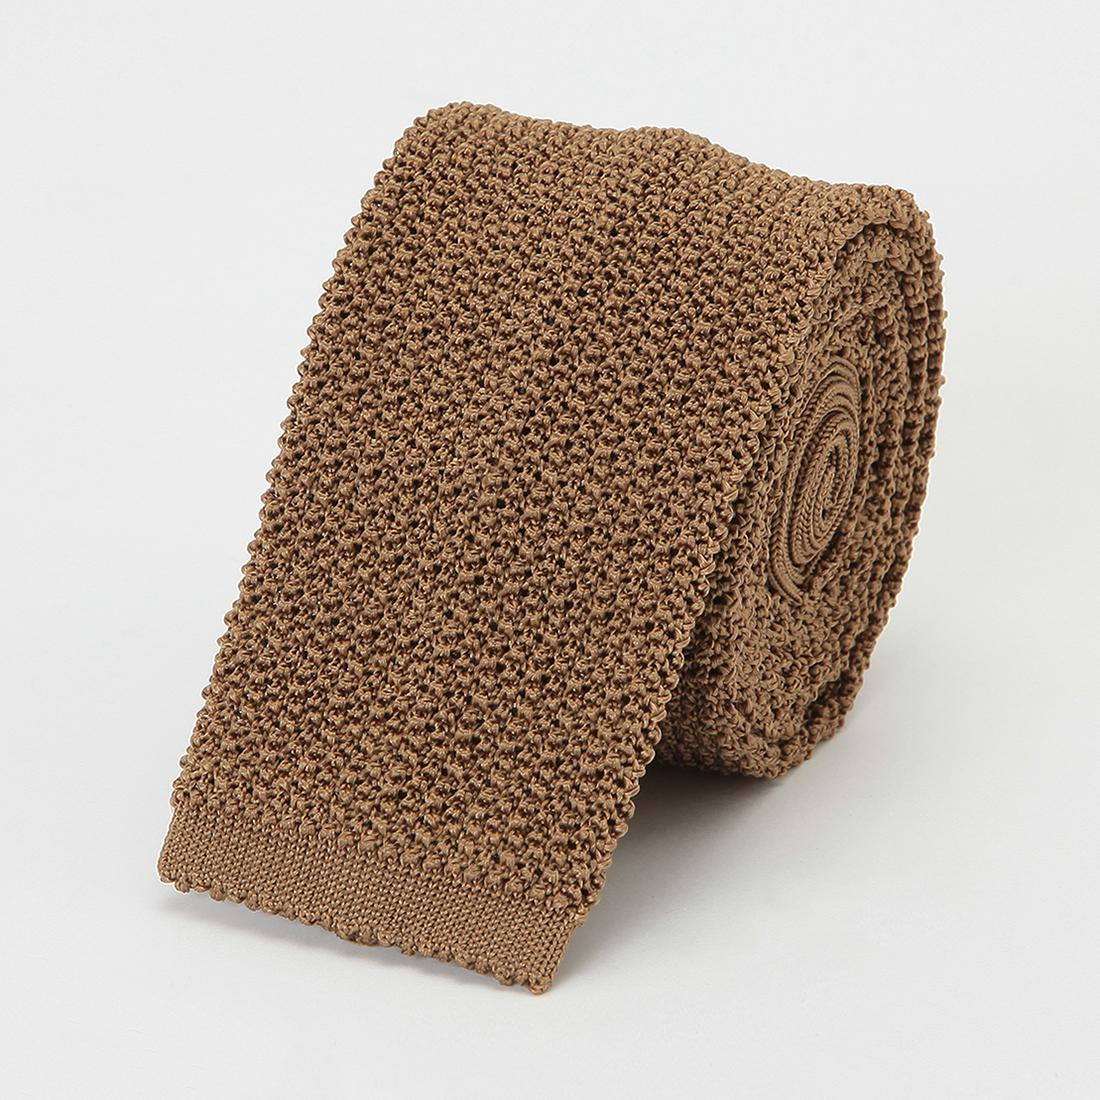 Barneys New York Silk Knit Tie 2011116: Beige